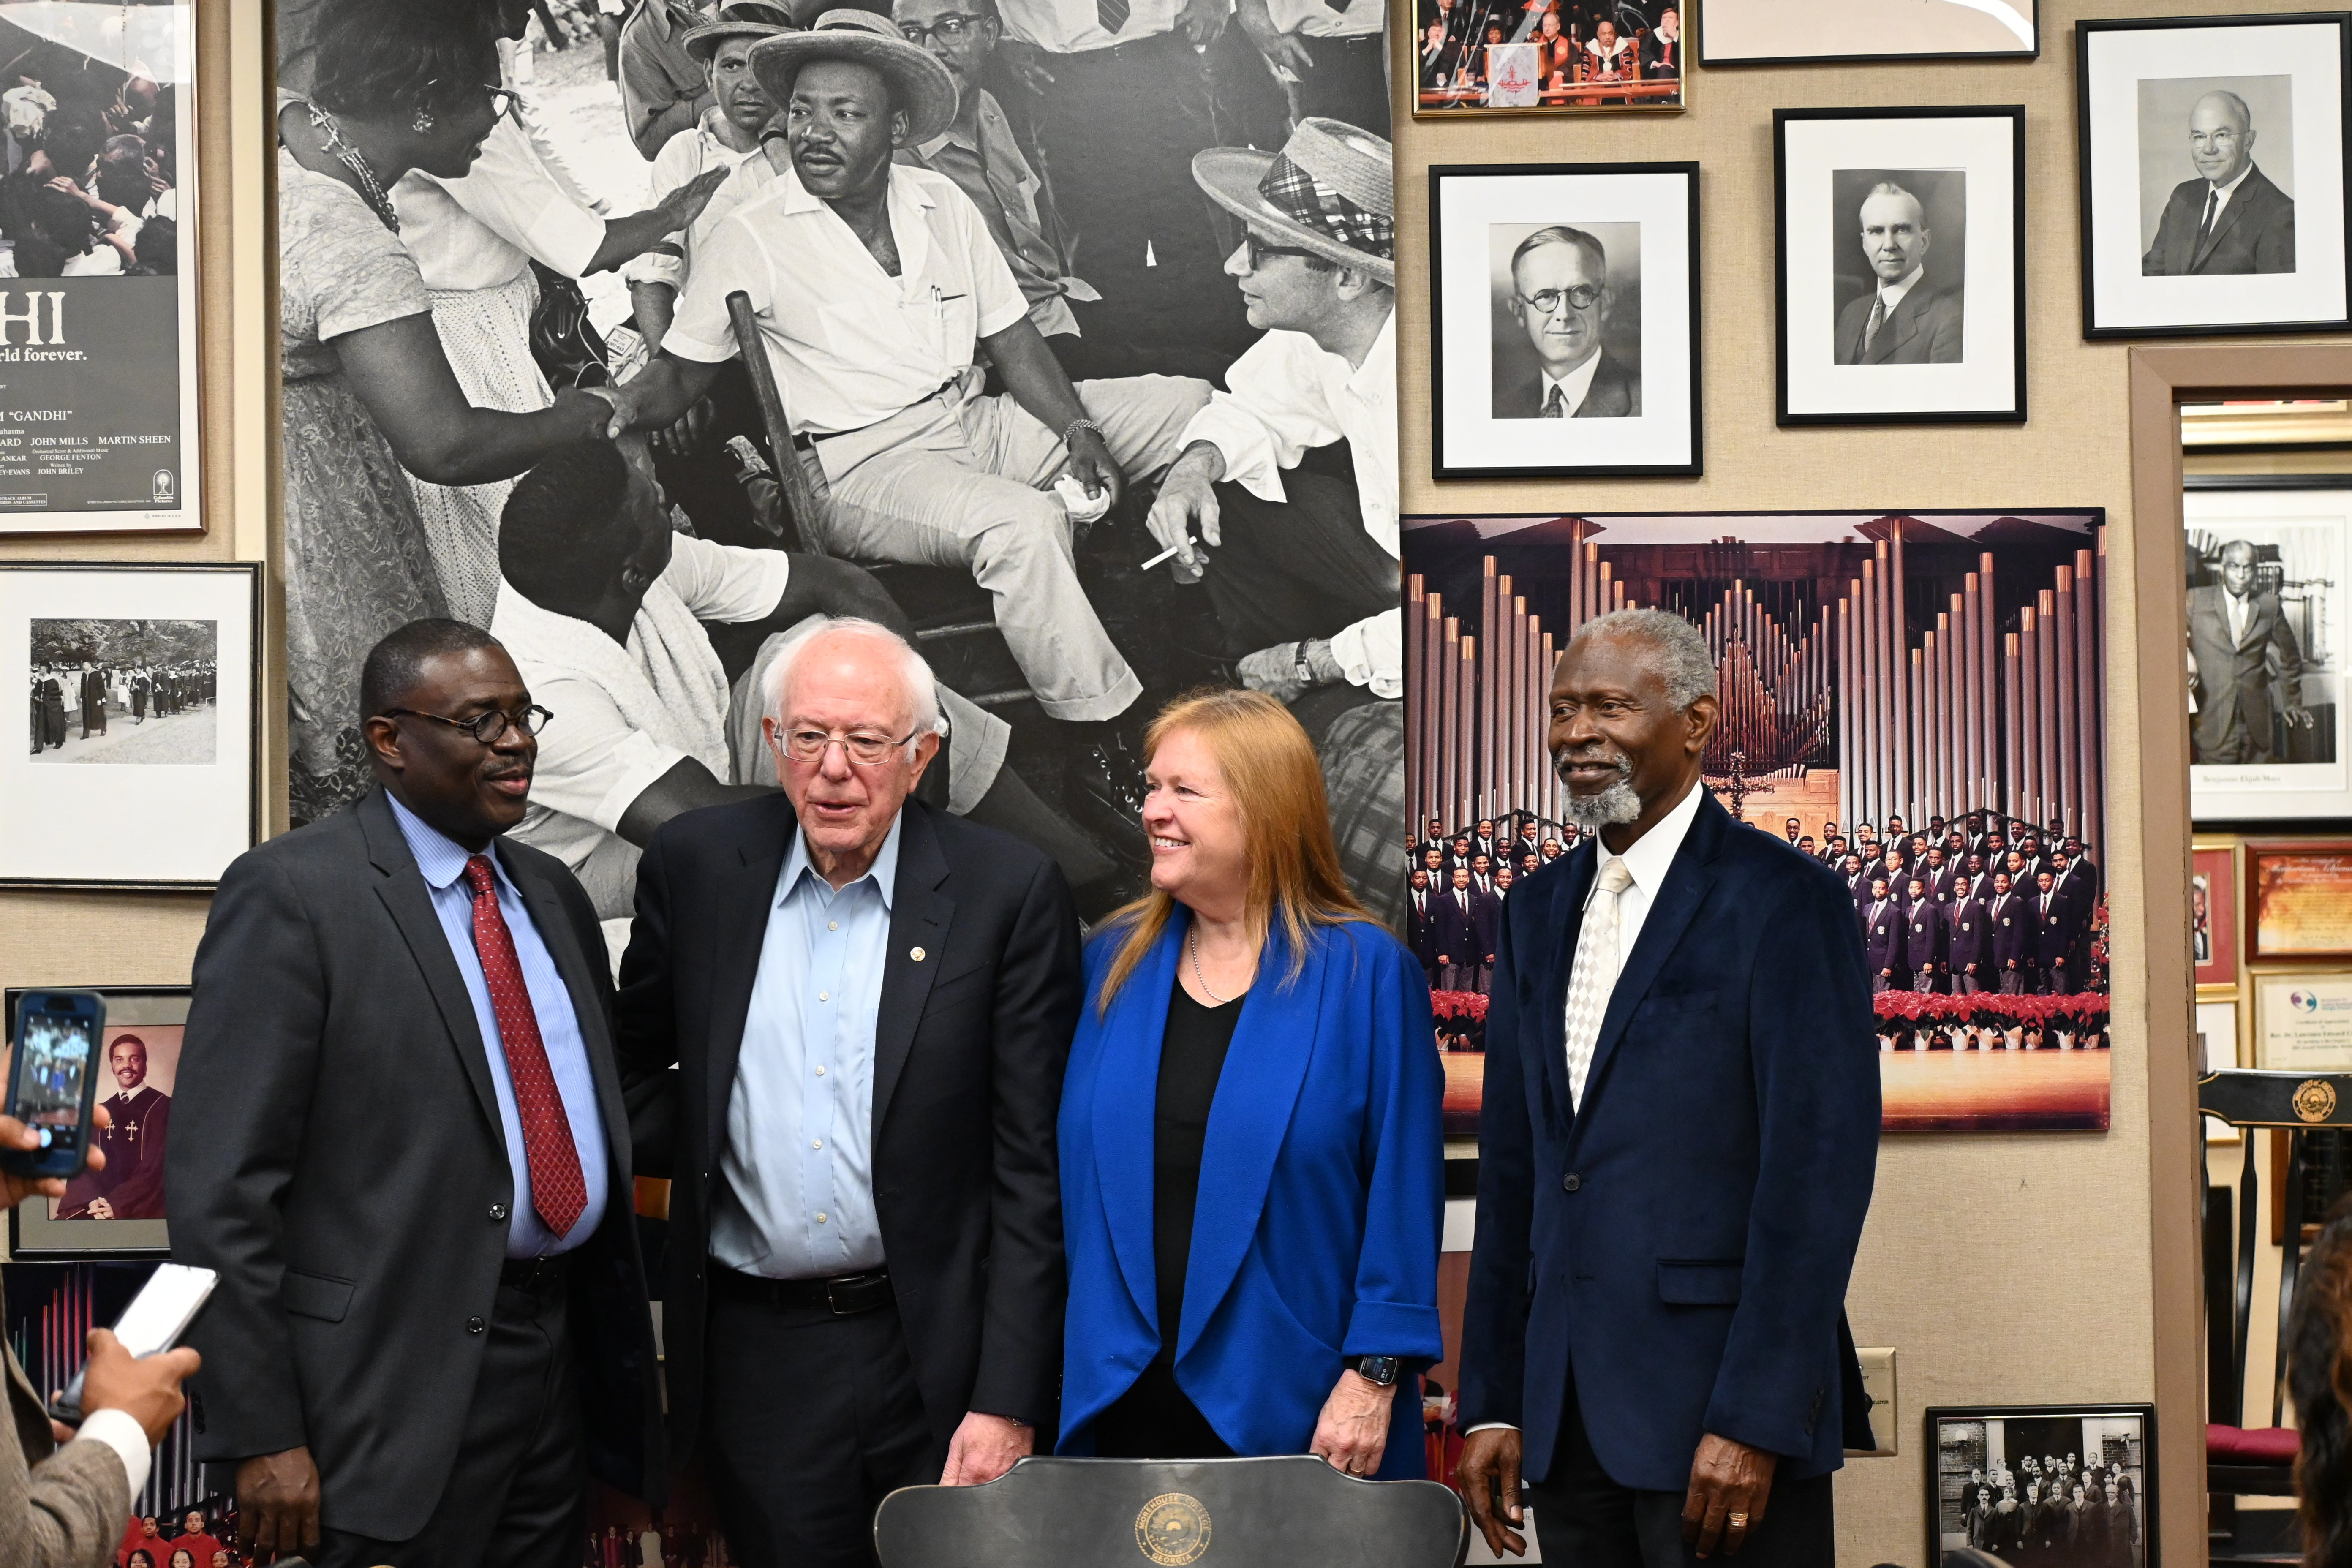 Sen. Bernie Sanders with wife and Morehouse College officials in the school's MLK Chapel in Atlanta.